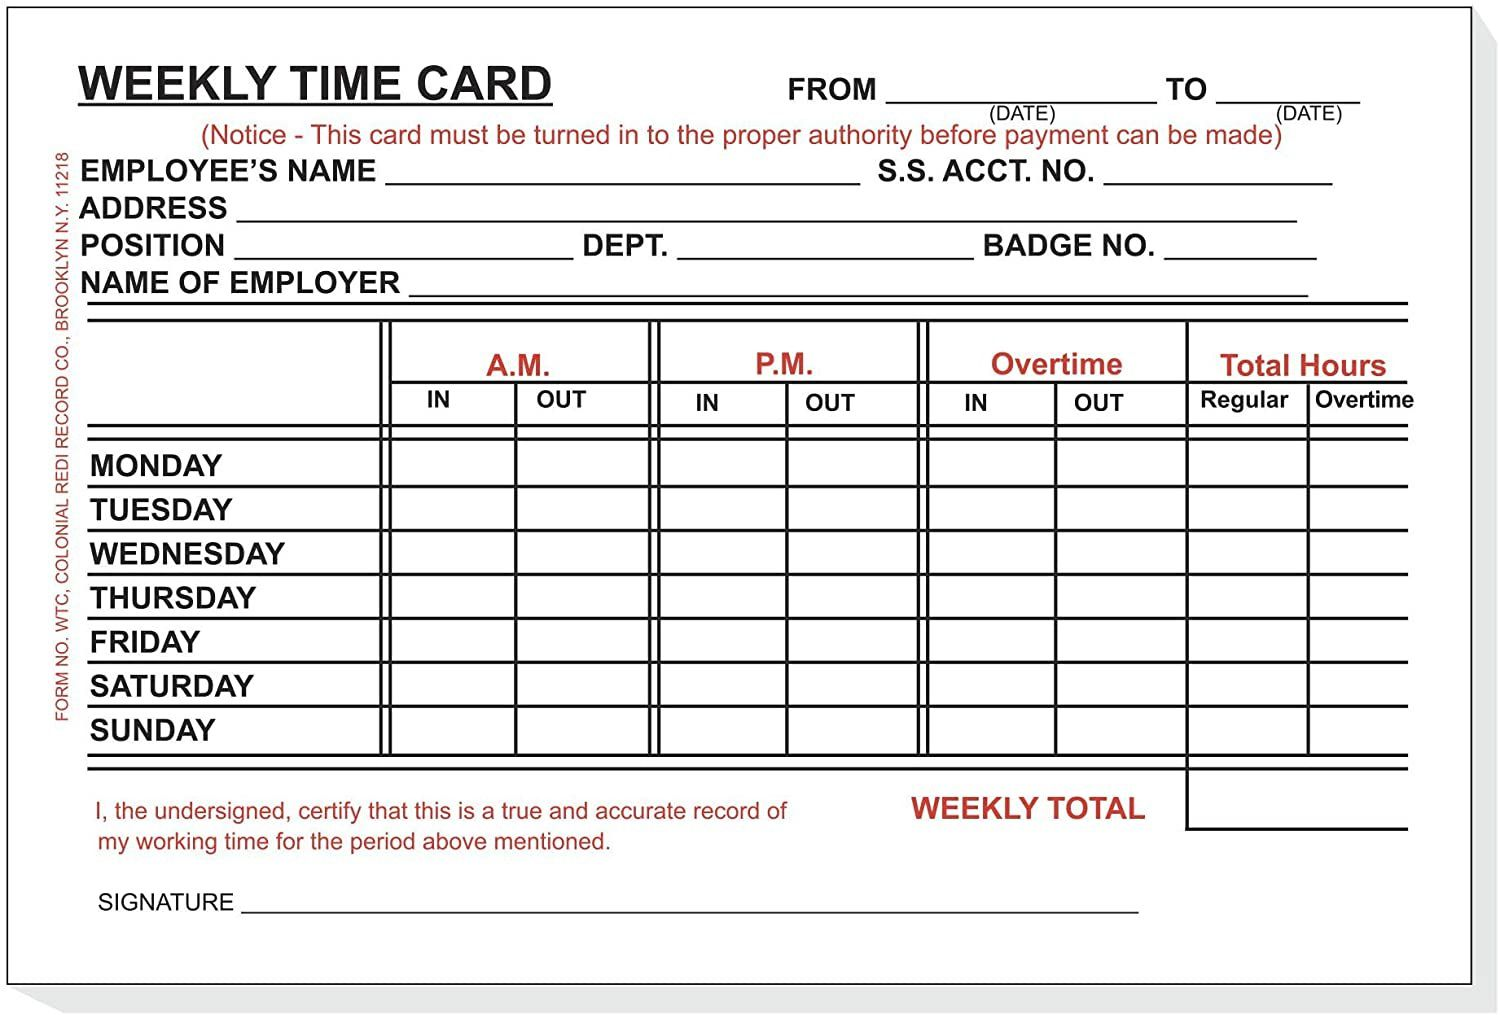 002 Frightening Employee Time Card Form High Def  Timesheet Template Excel Sheet FreeFull